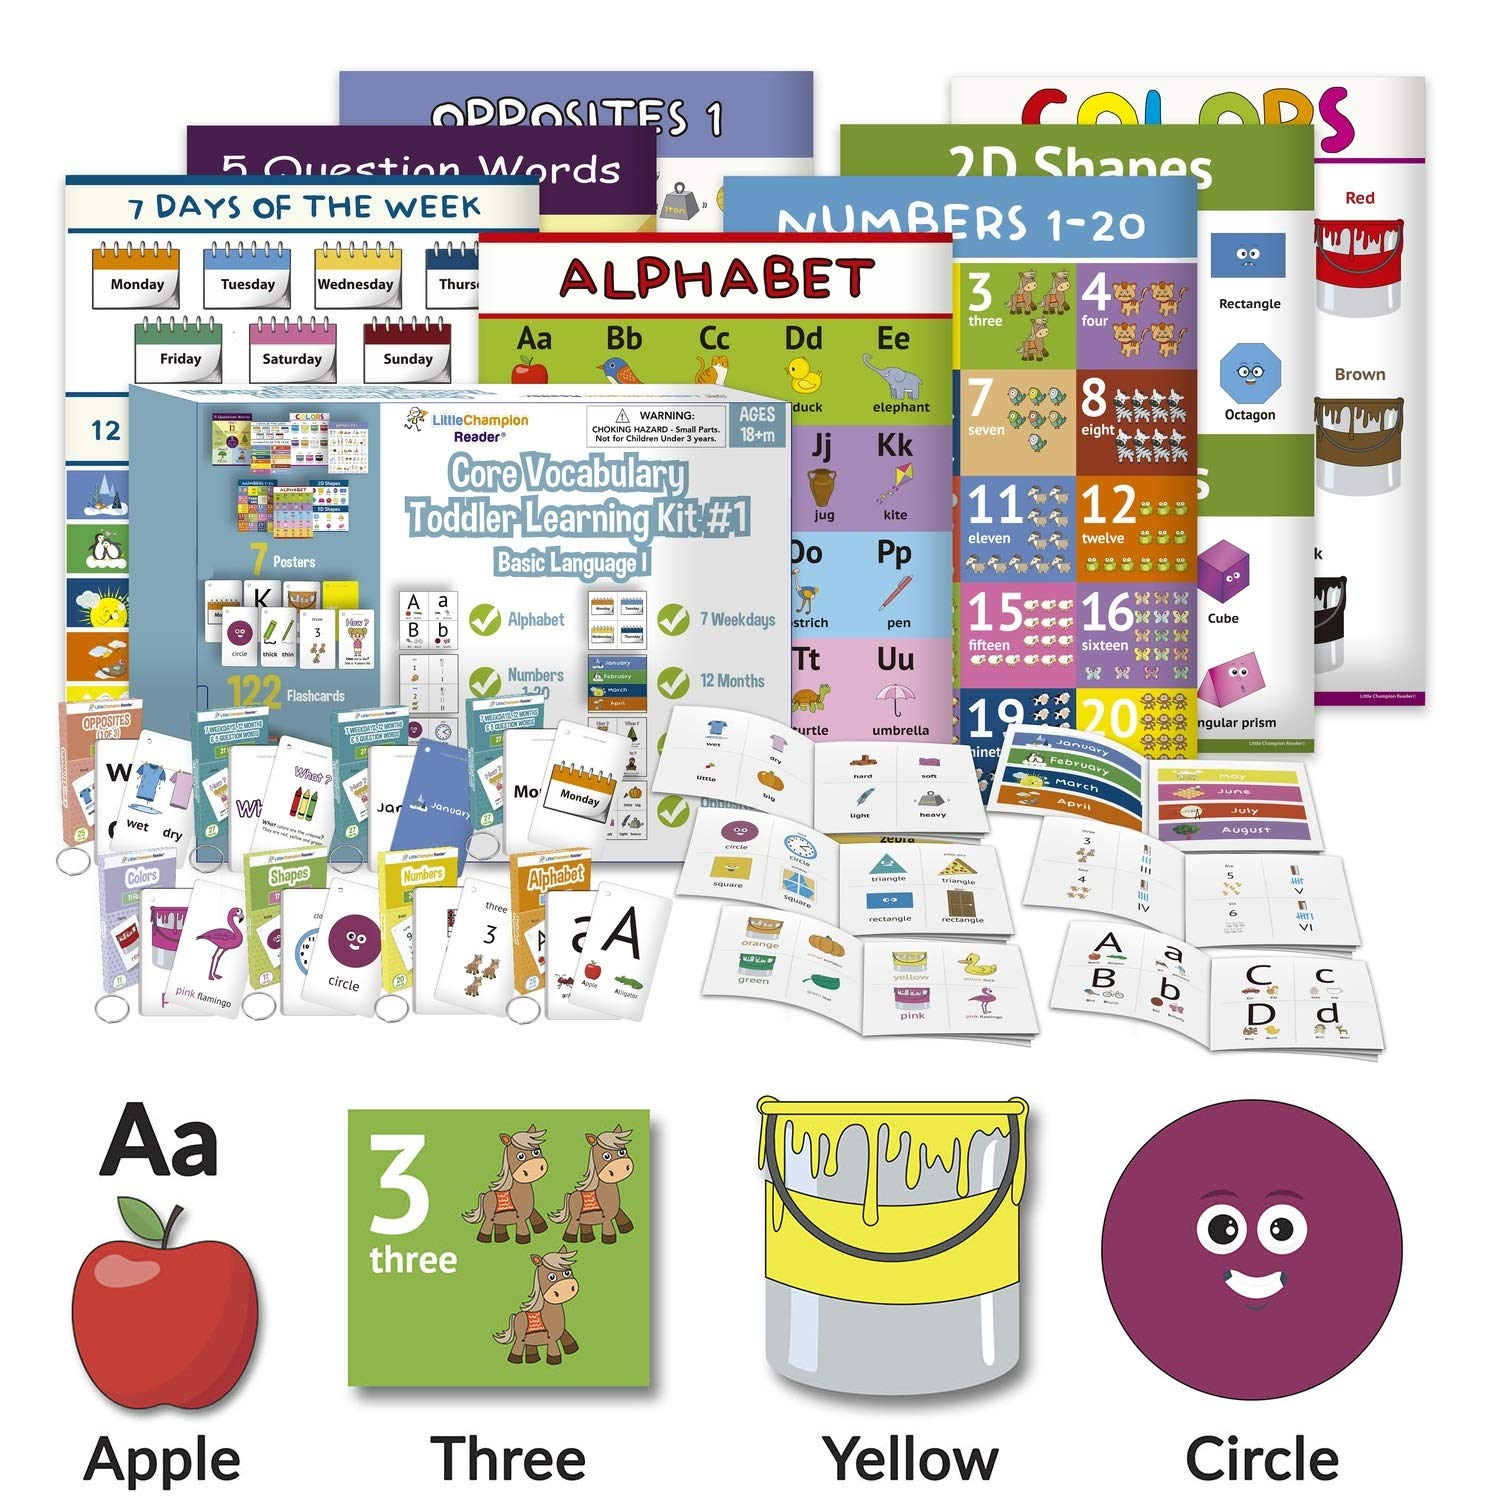 Little Champion Reader Teach Core Vocabulary Toddler Learning Kit 1 - Learn Alphabet, Letters, Number 1-20, Shapes (2D & 3D), Colors, 7 Weekdays, 12 Months, Question Words and Opposite Pairs (7-in-1) by Little Champion Reader